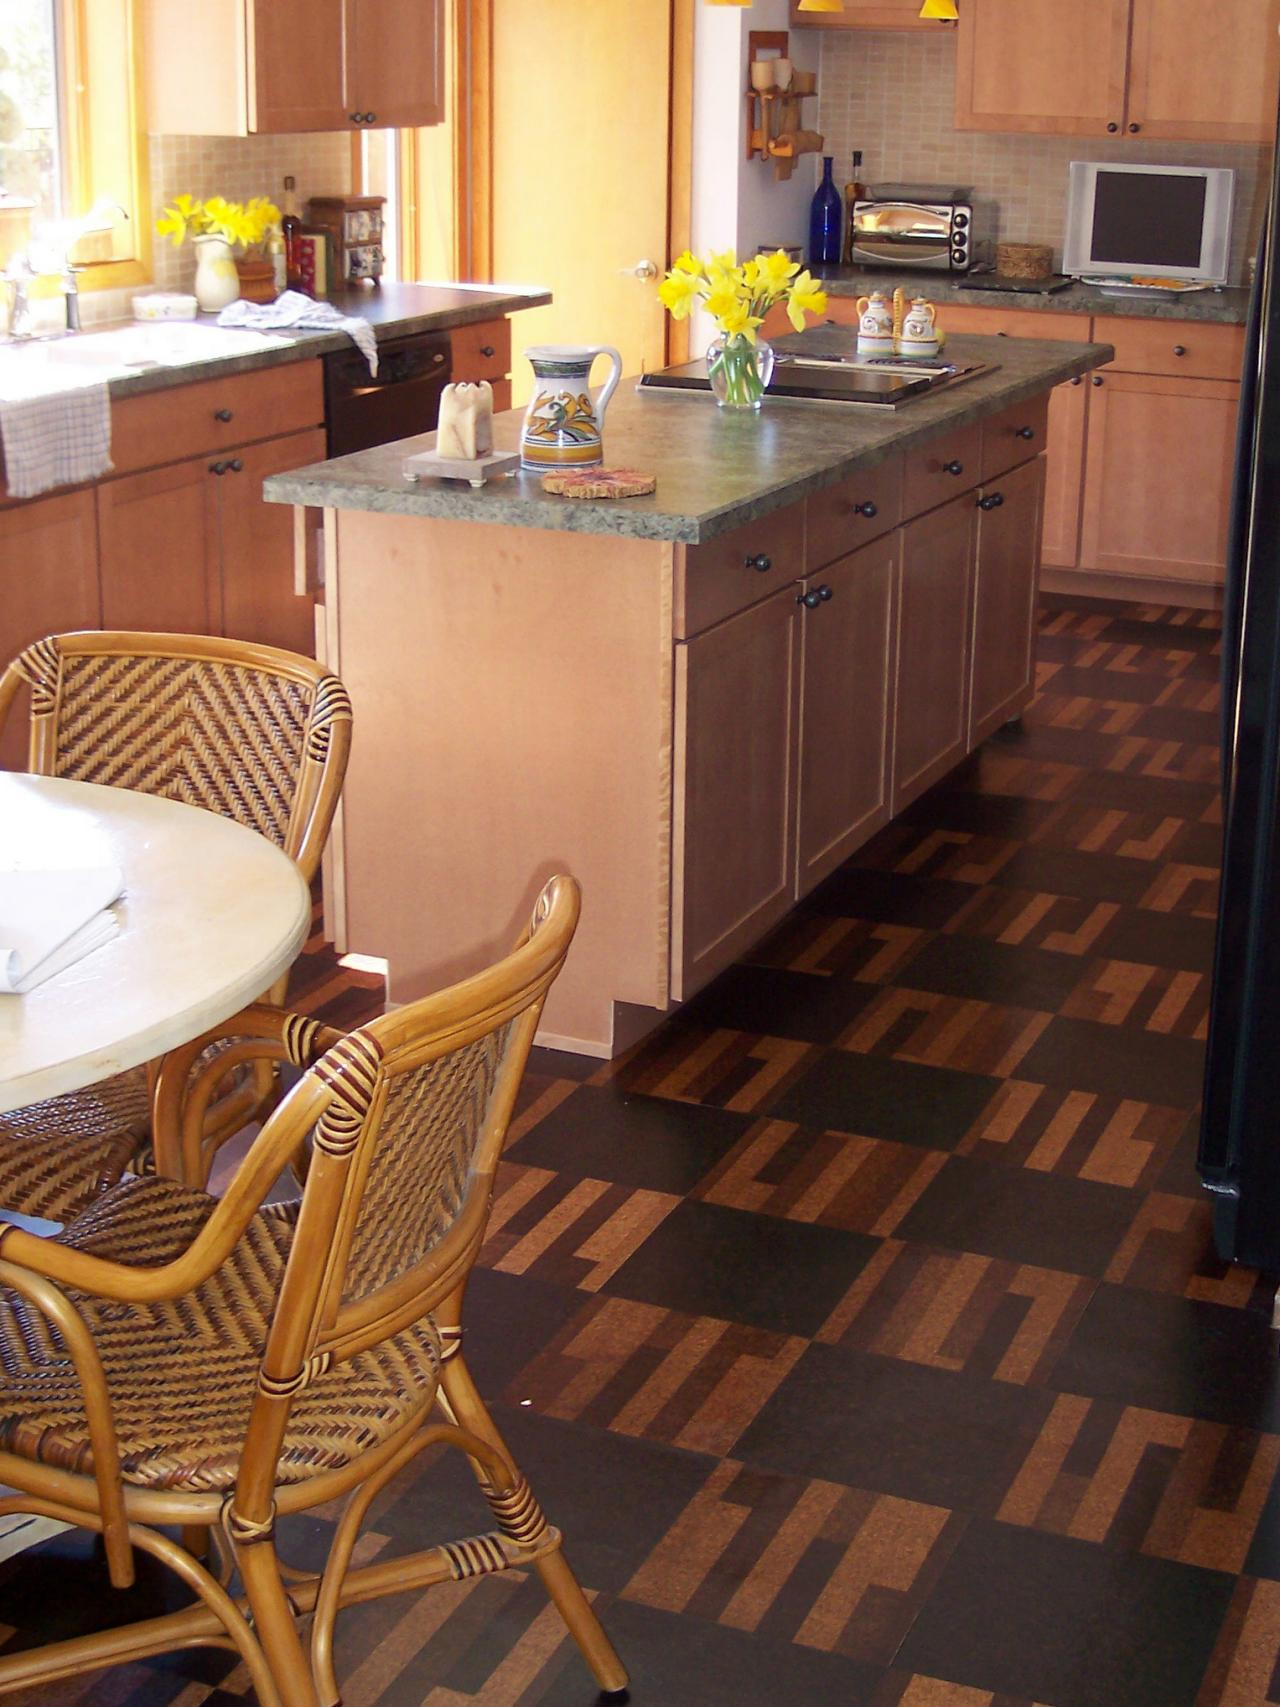 Is Bamboo Flooring Good For Kitchens Cork Flooring For Your Kitchen Hgtv